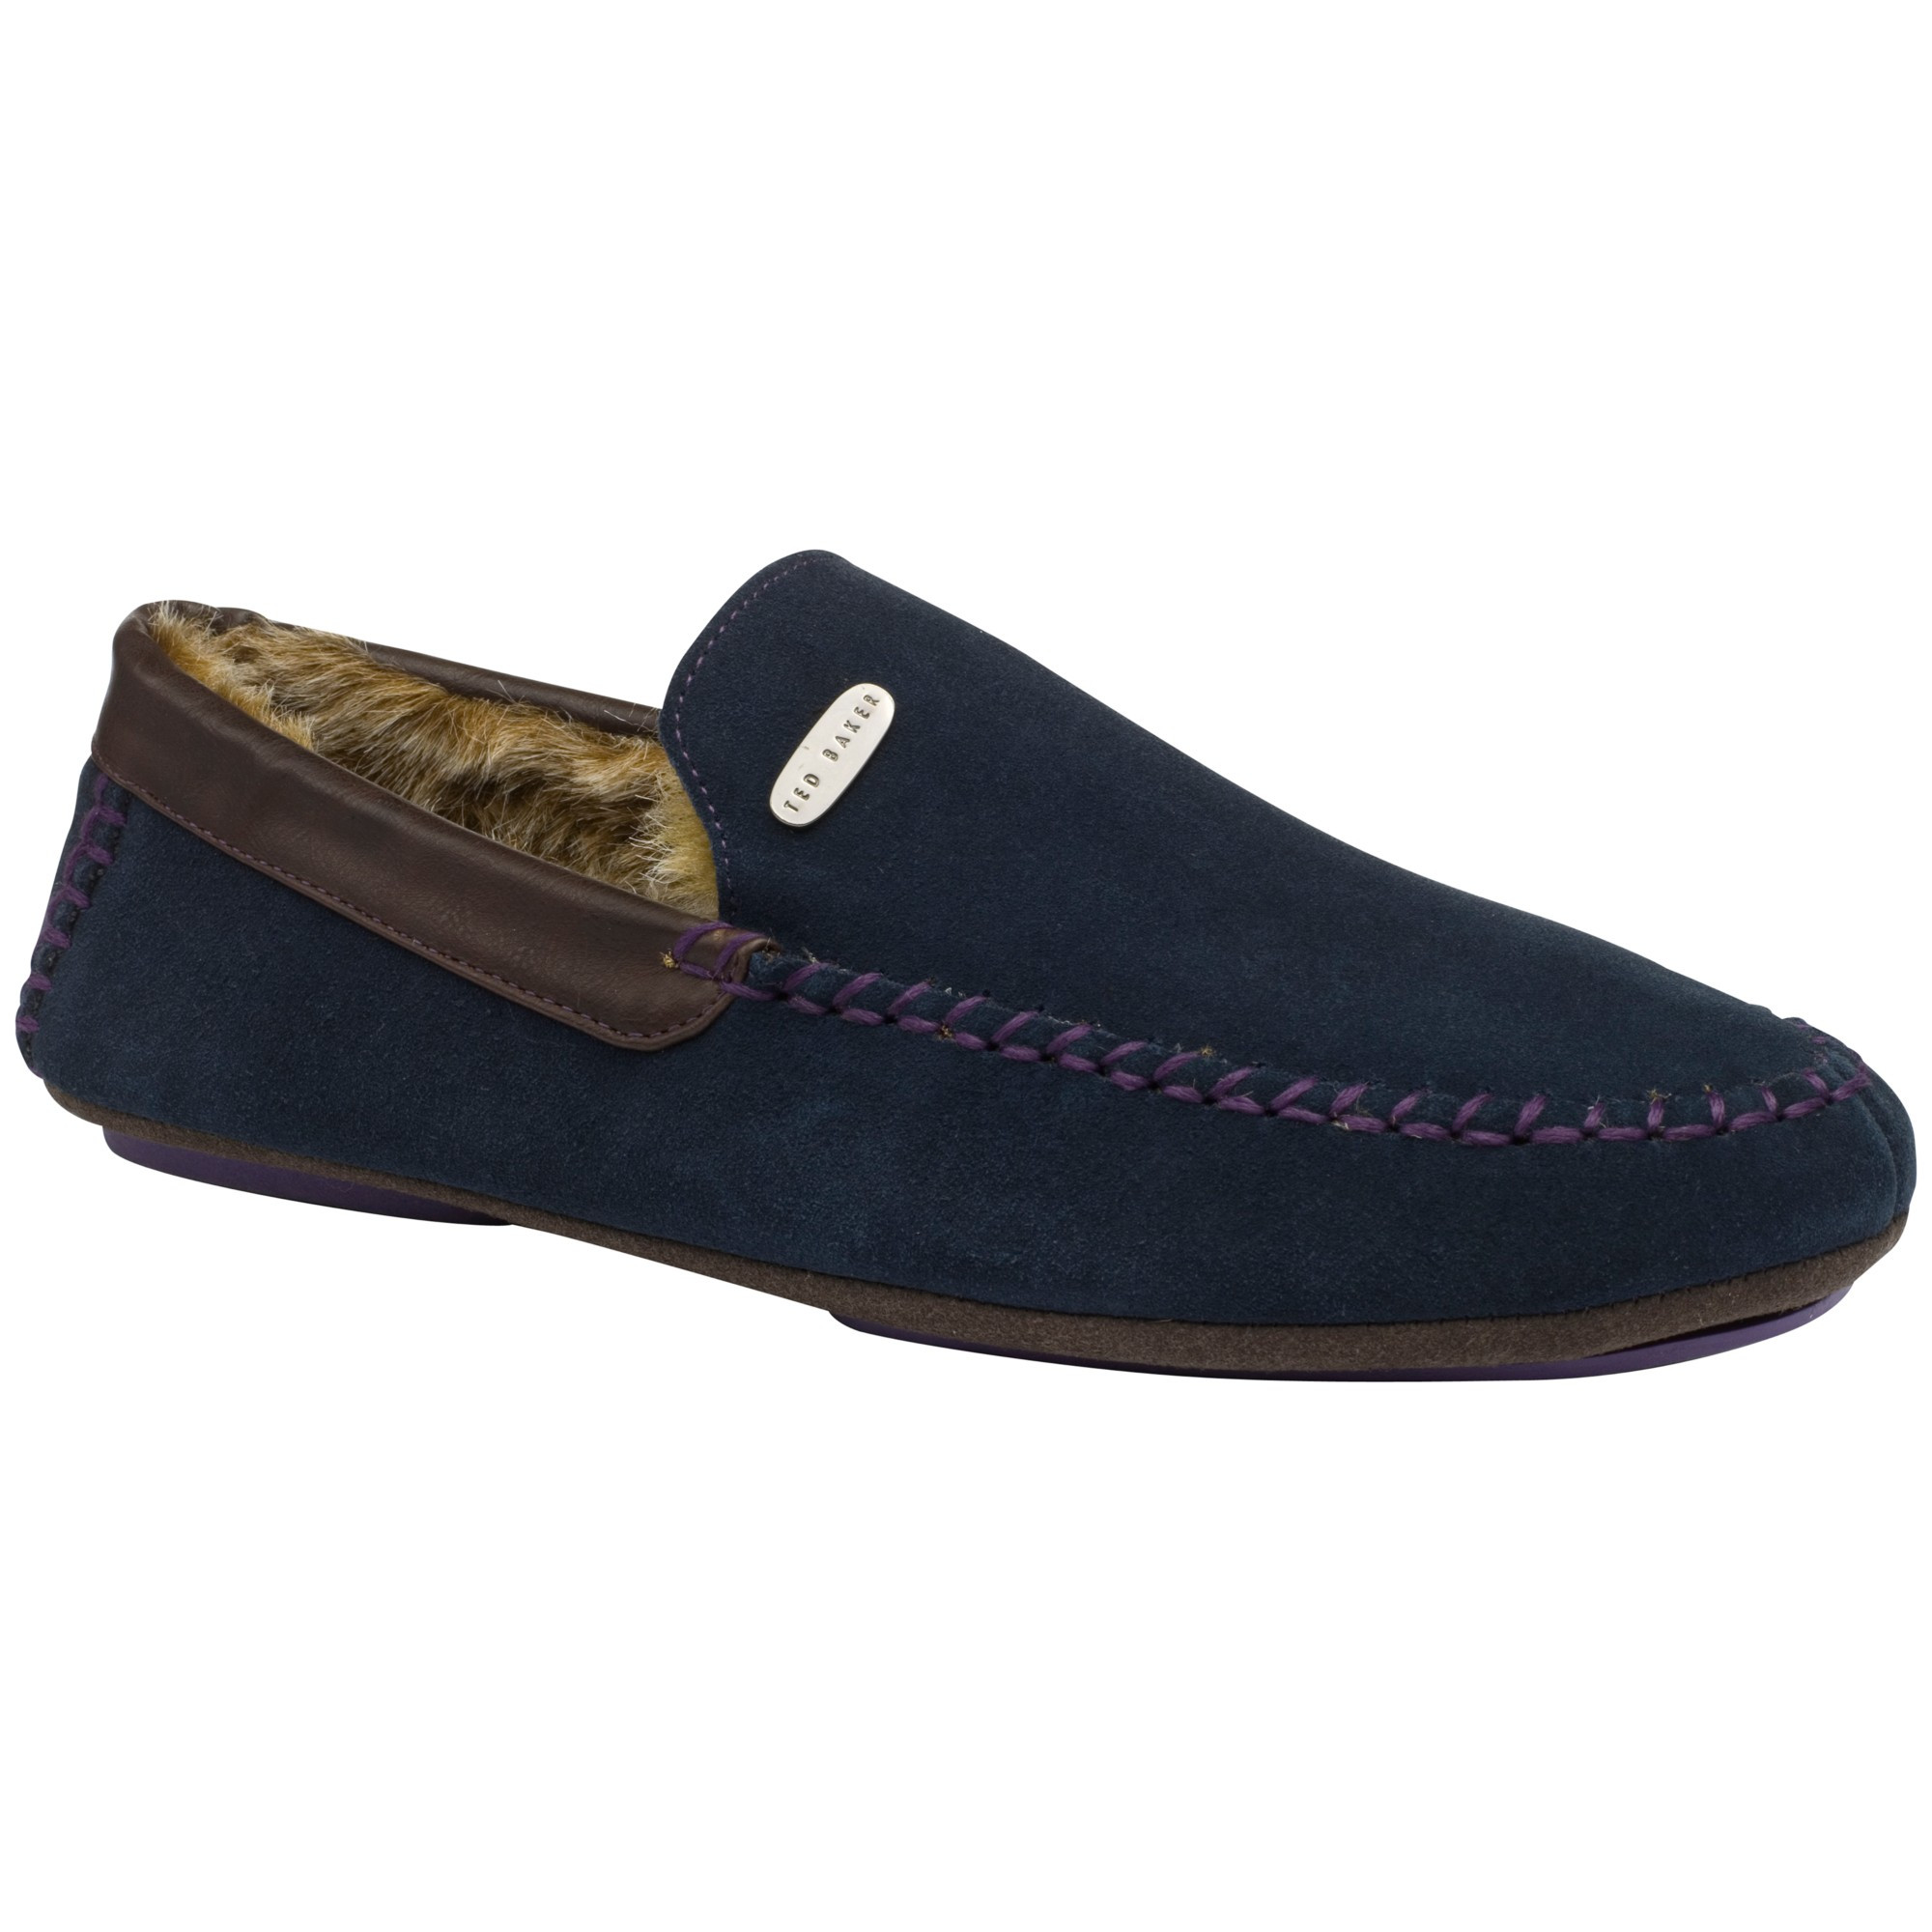 Blue Maddox Slippers Moccasin Ted Baker For Men HED2IW9Y